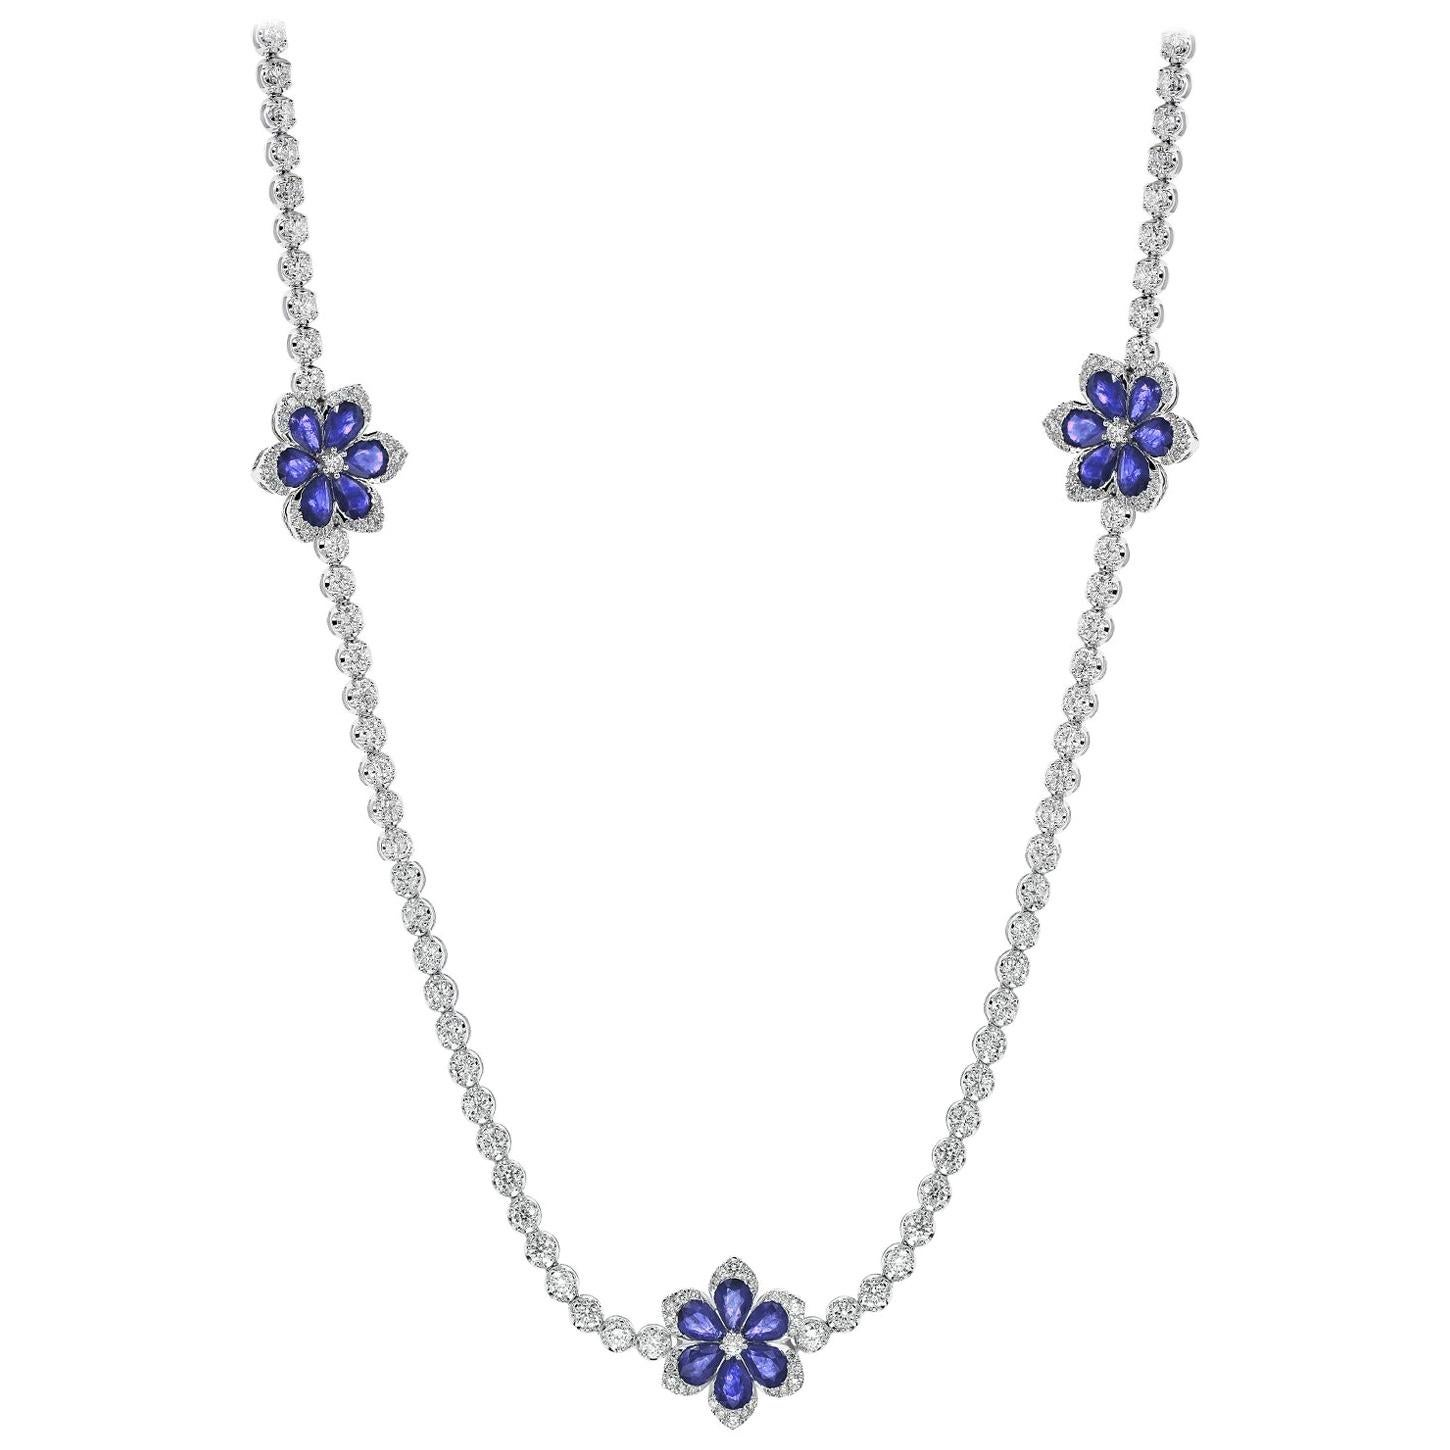 White Gold 30.50 Carat Long Sapphire Diamond Flower Necklace